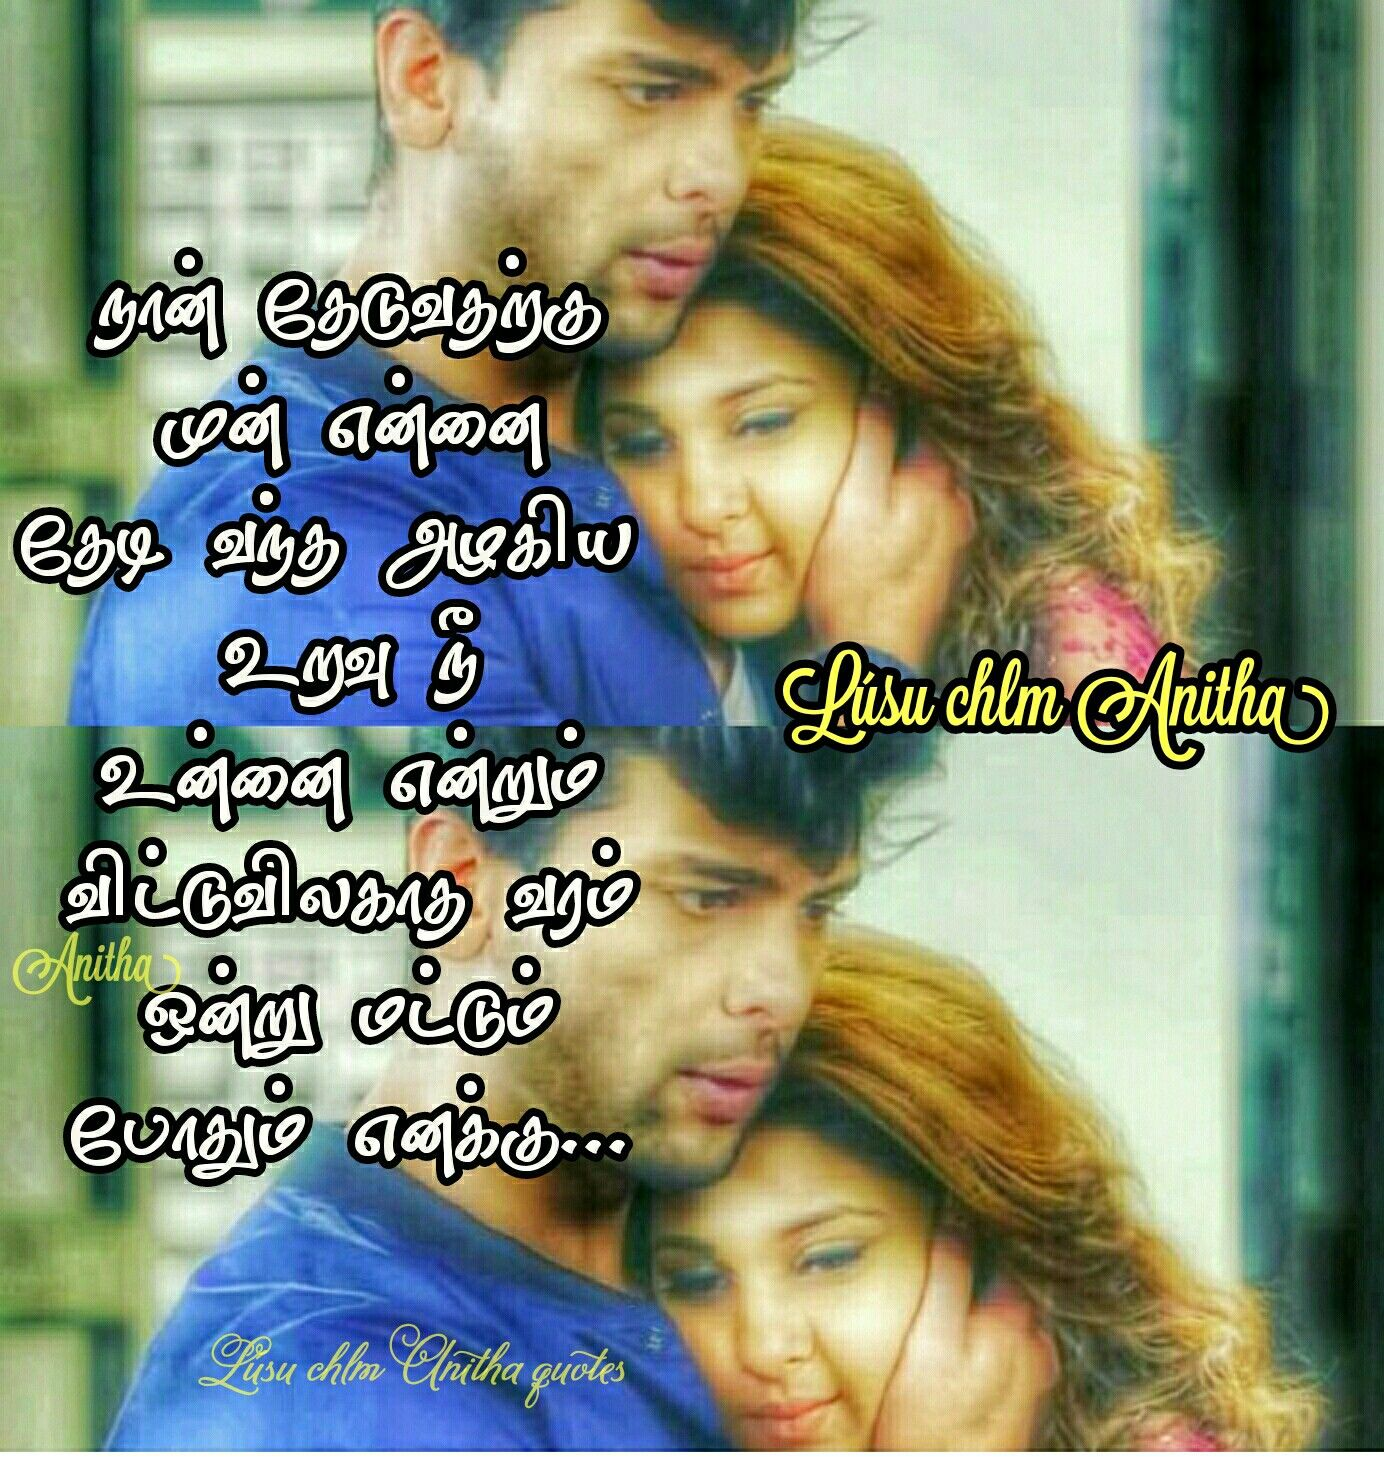 Pin By Dhi Na On Shanthi Movie Love Quotes Photo Album Quote Lovely Quote